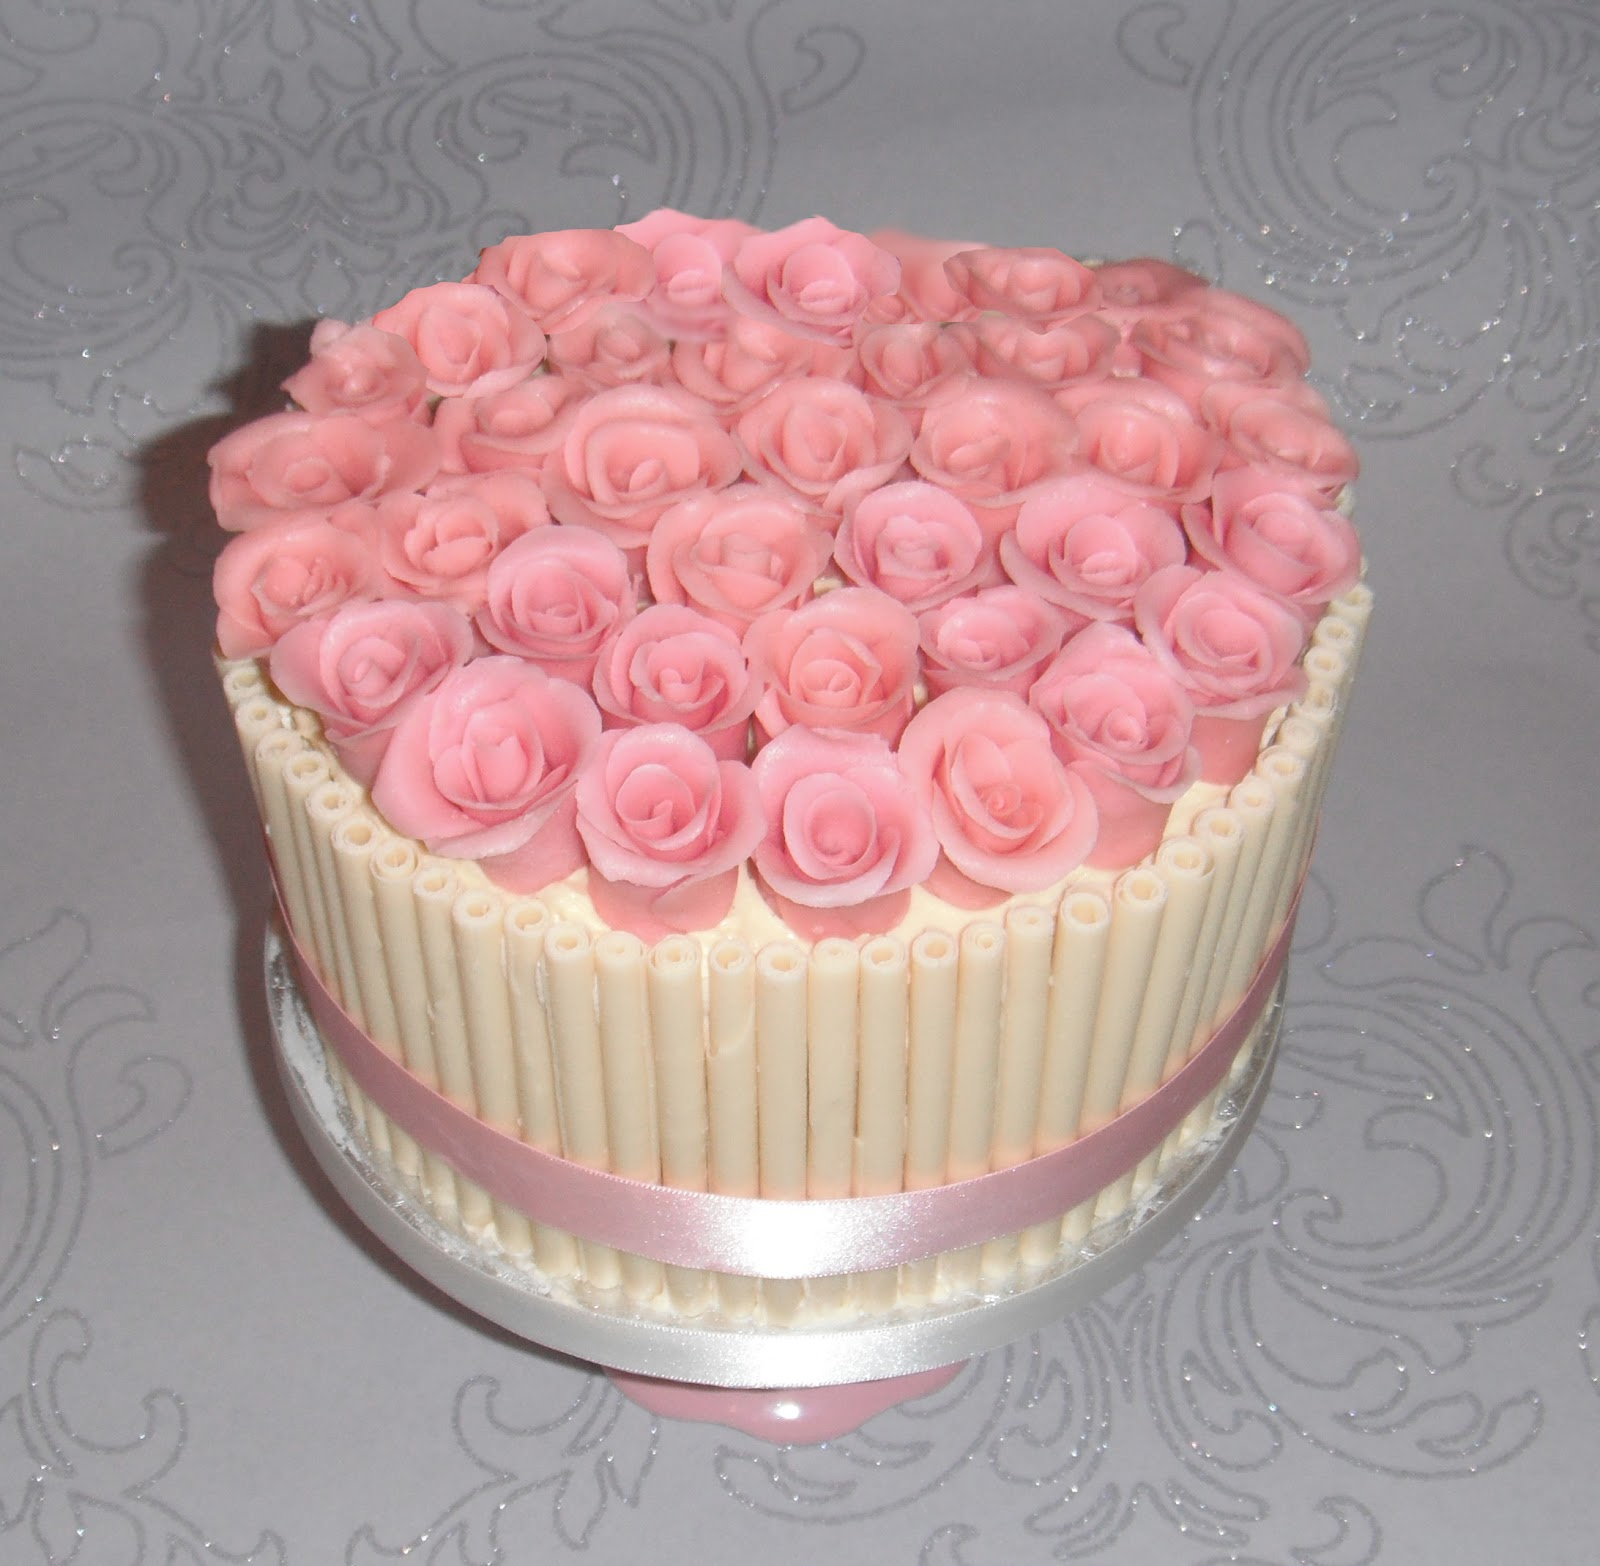 White chocolate and pink roses birthday cake izmirmasajfo